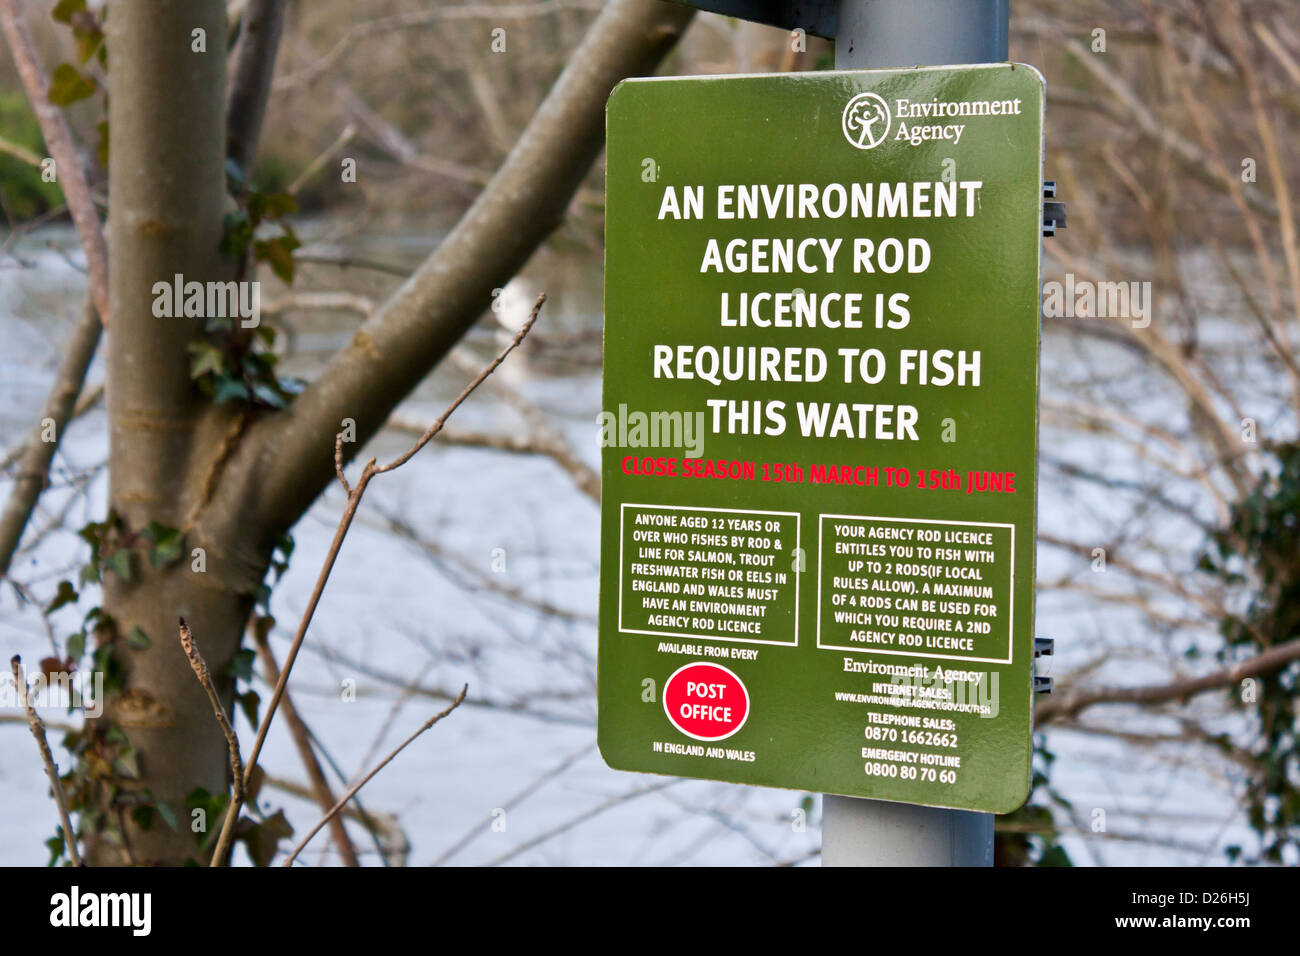 Freshwater fish england - Stock Photo Uk Environment Agency Rod Licence Notice For The River Thames